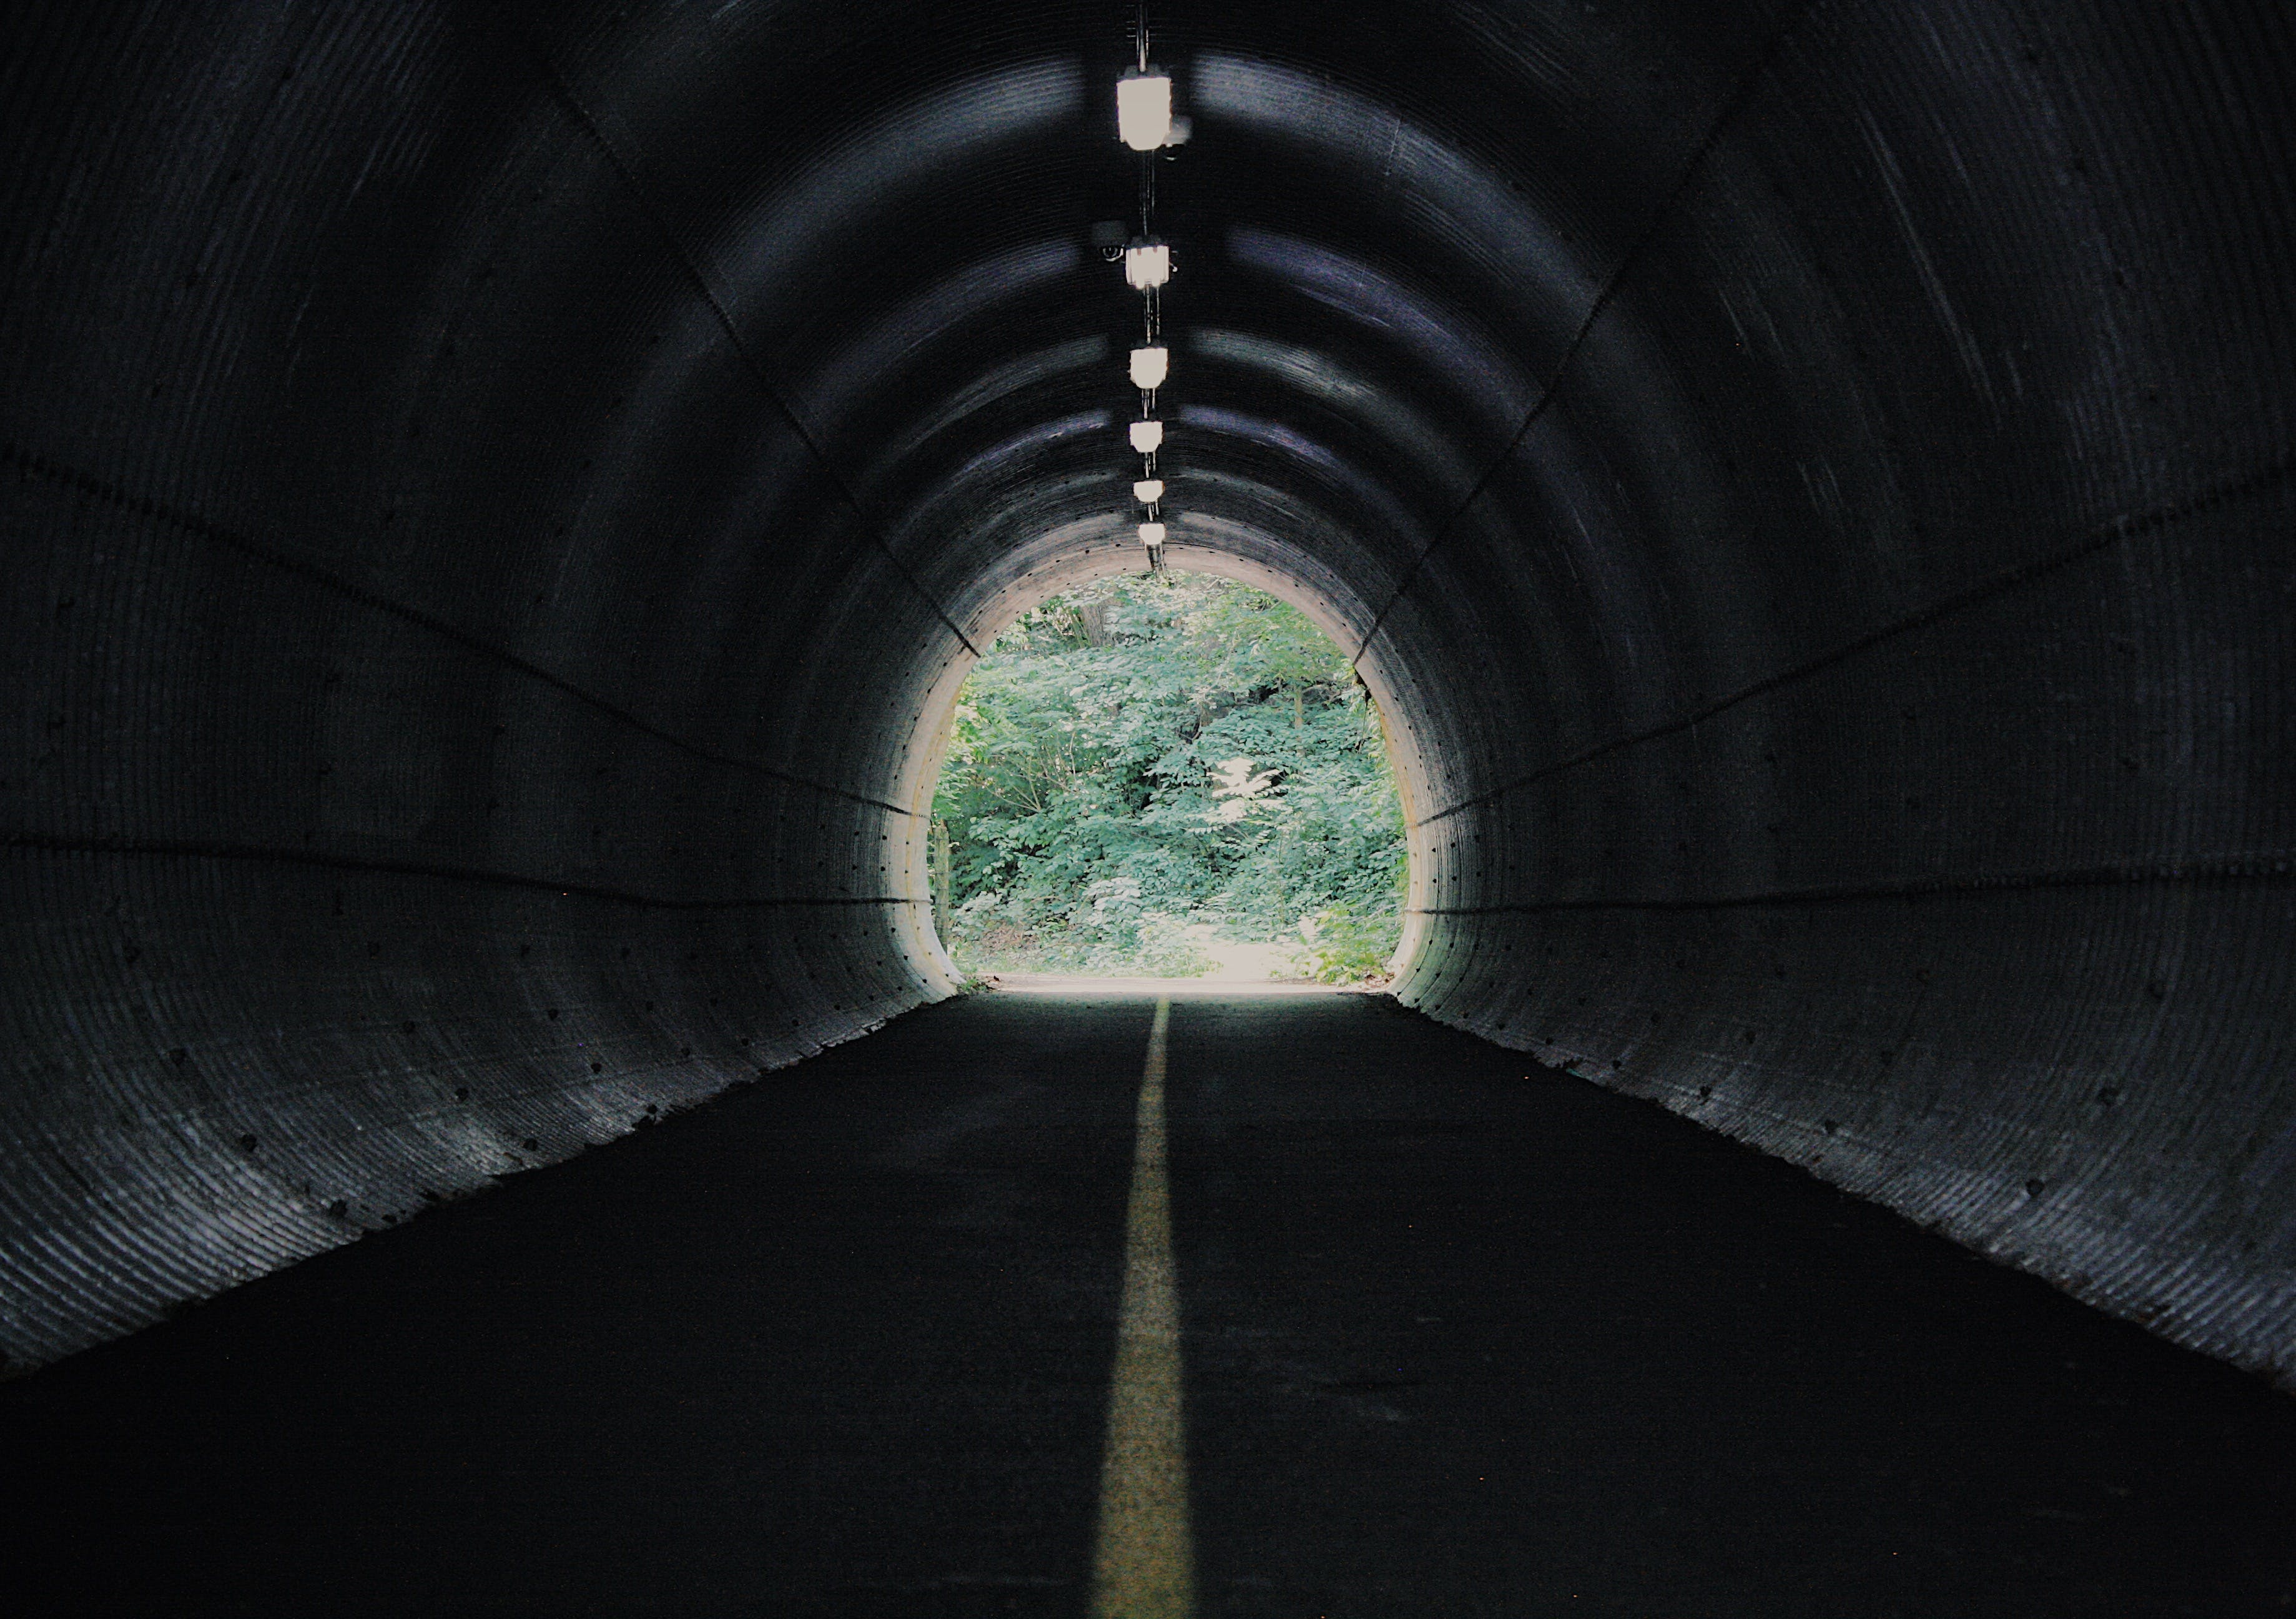 Free stock photo of tunnel